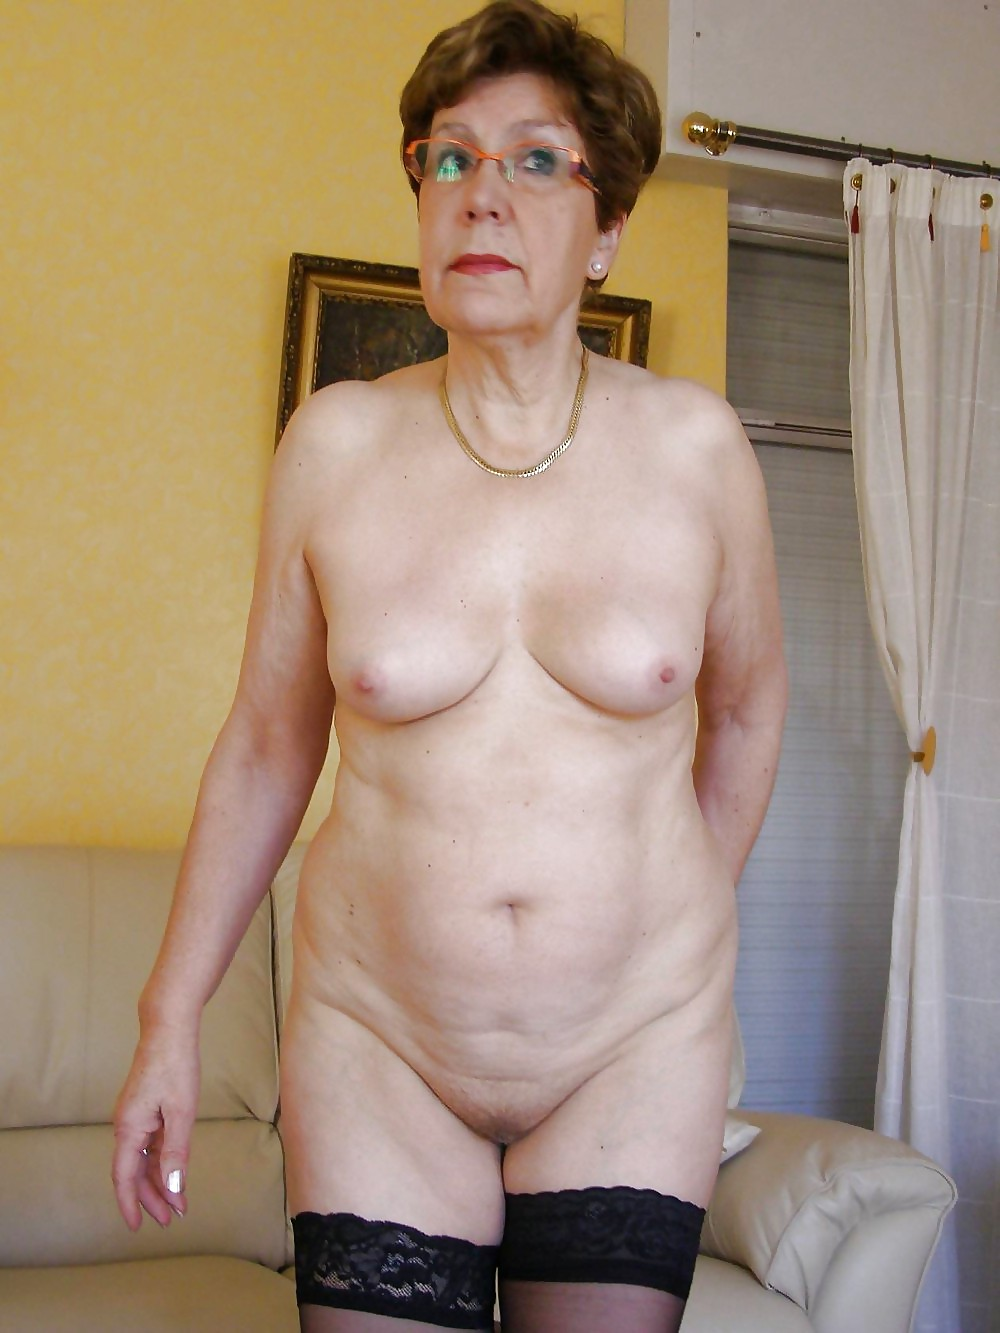 Homemade granny pic, free women gallery